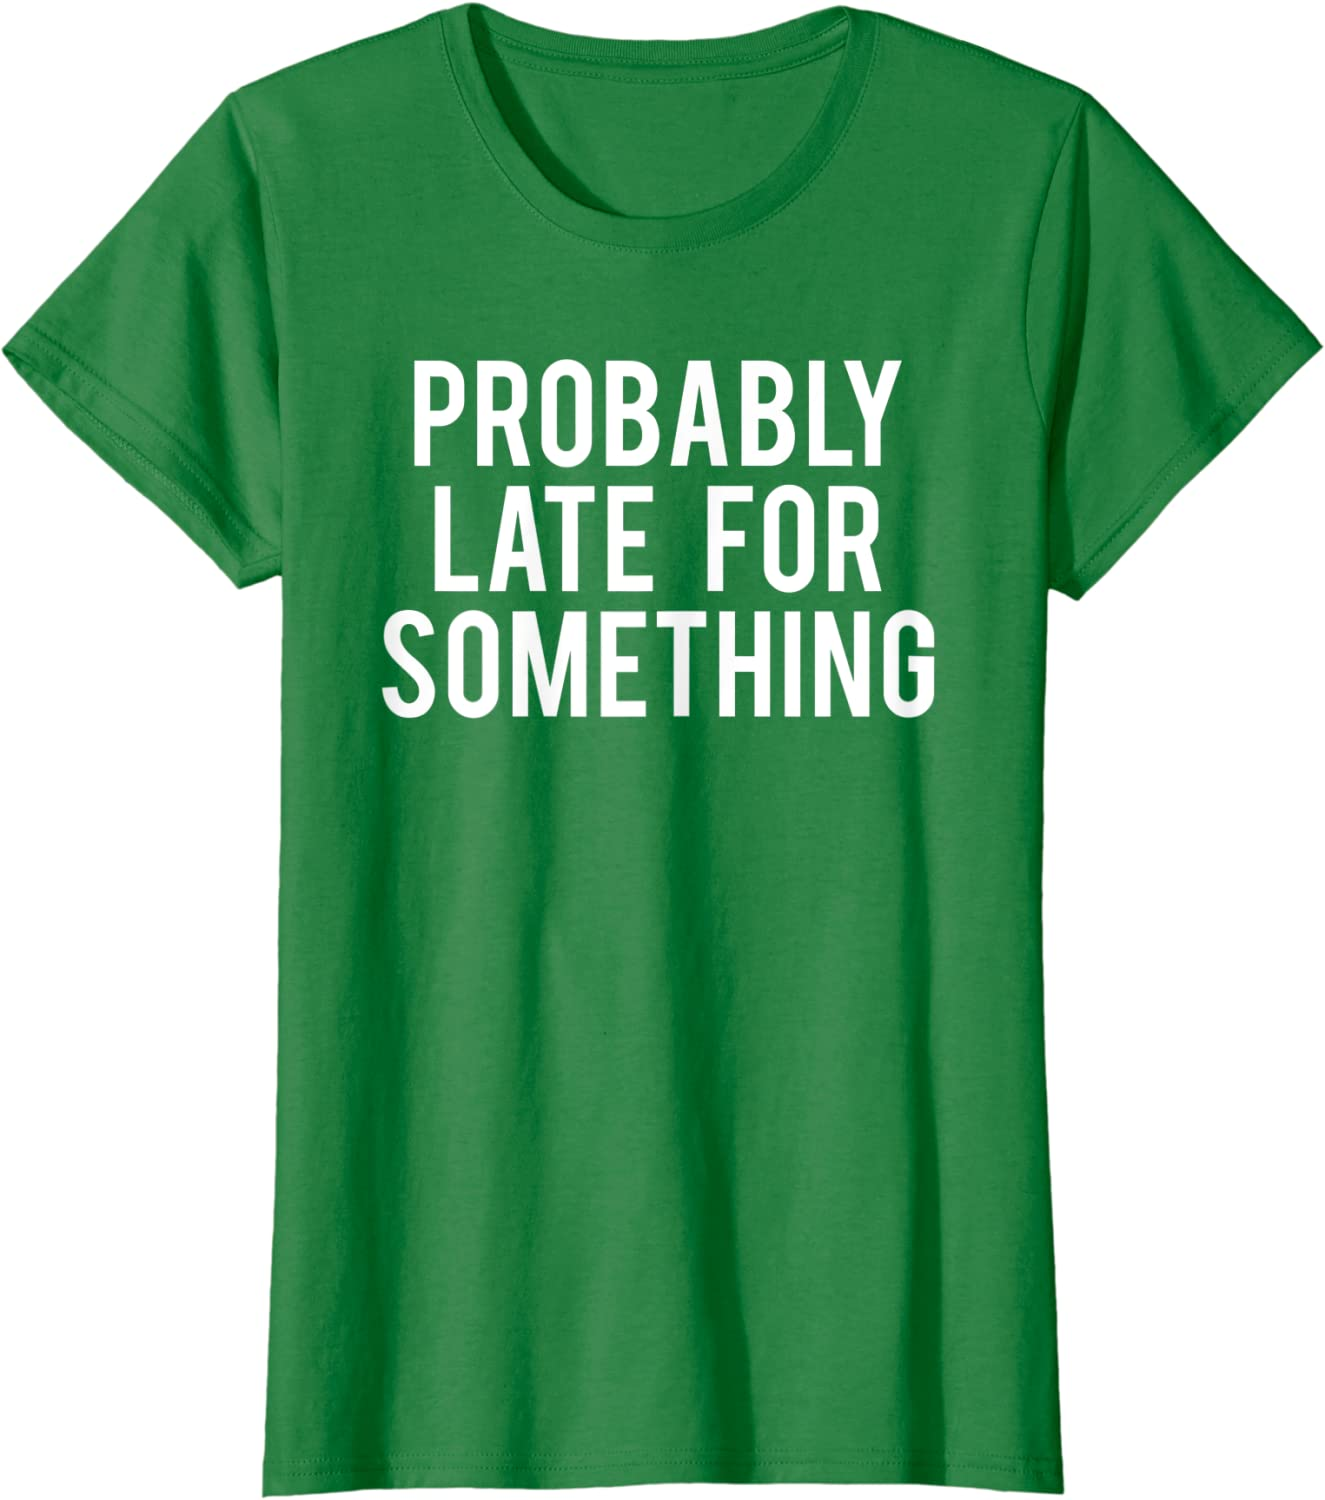 Women/'s Funny Gym Shirt Cute Shirt Women/'s Gym Apparel Probably Late For Something Sarcastic Shirt Women/'s Graphic Tee